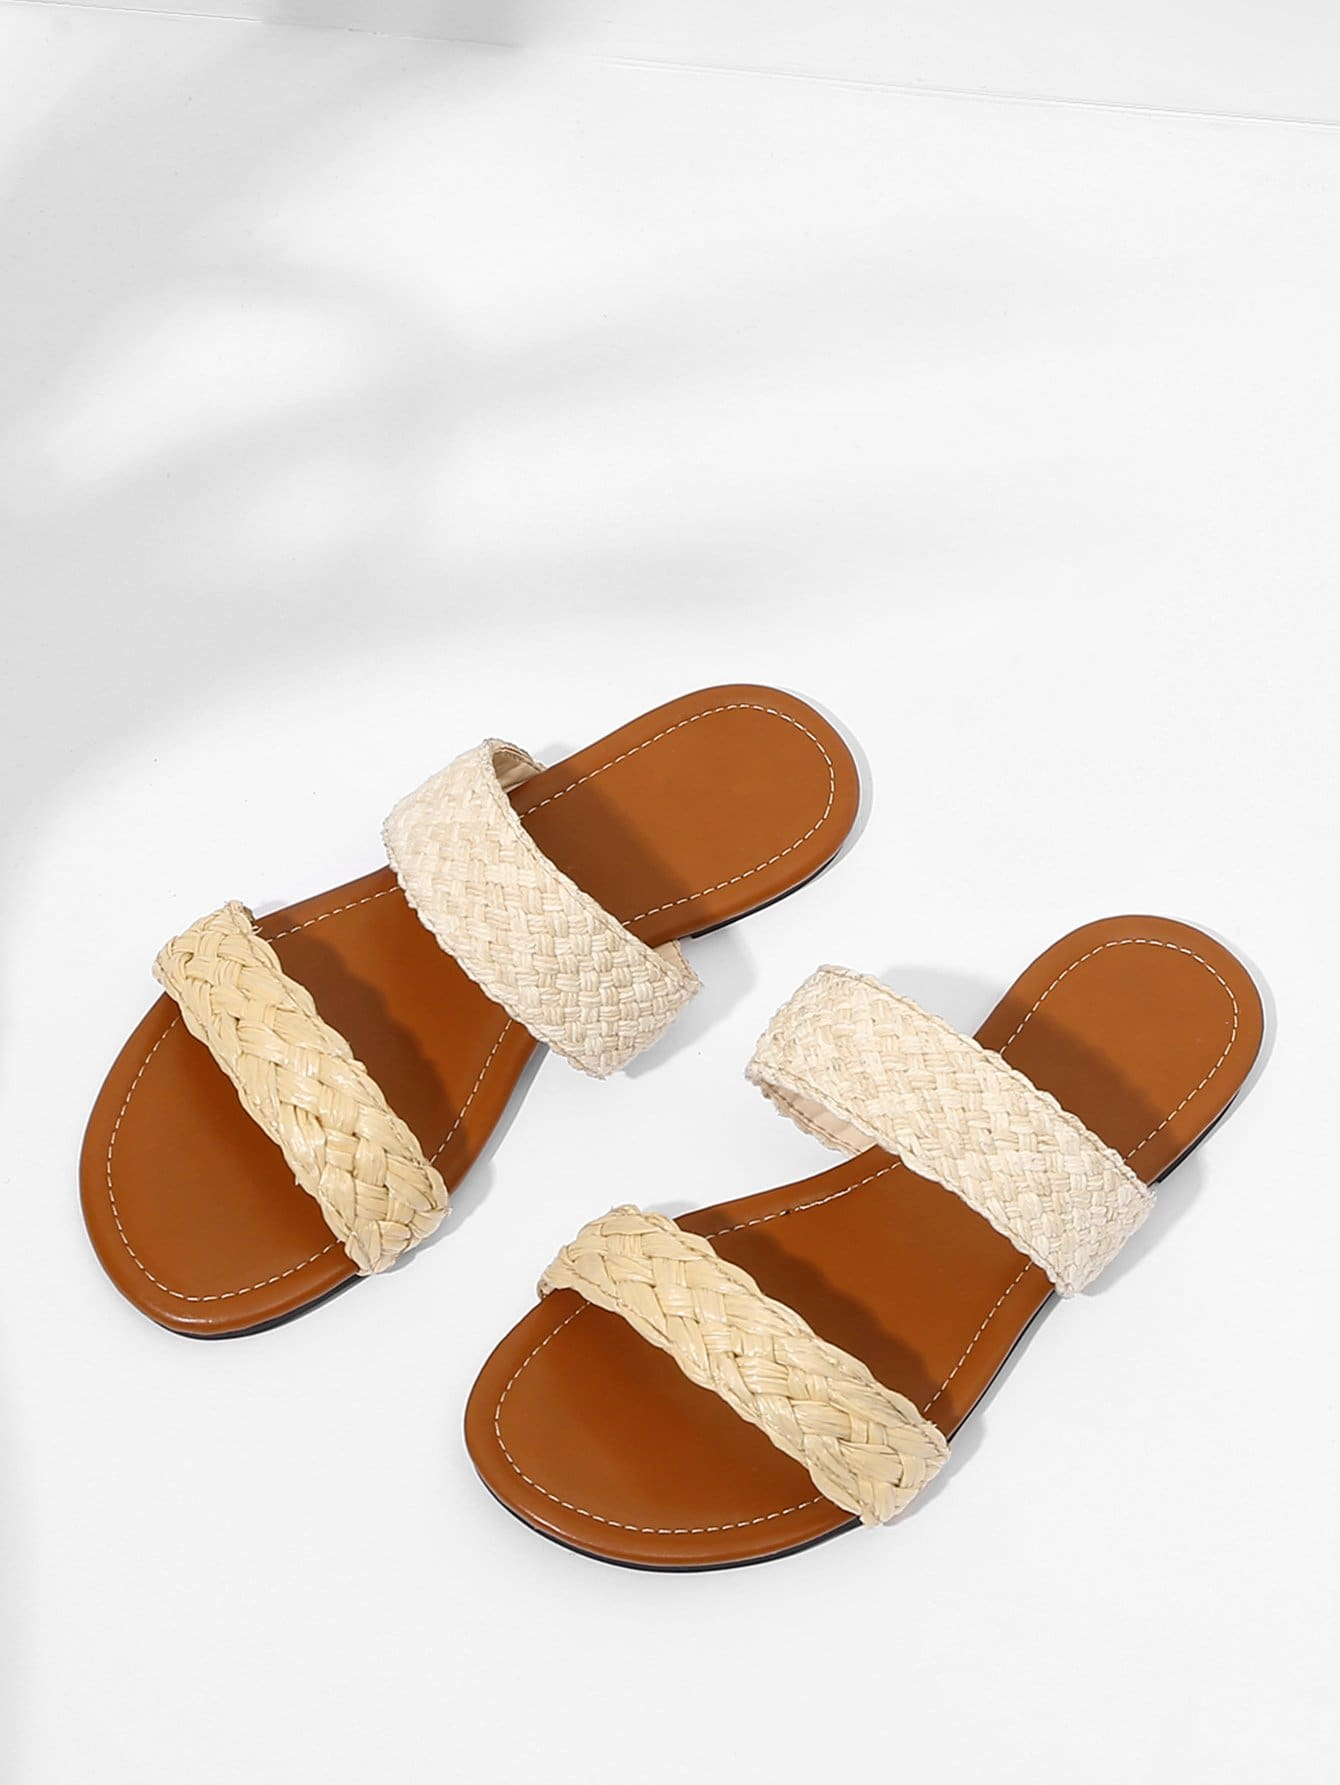 Straw Woven Flat Sandals woven design straw flat sandals